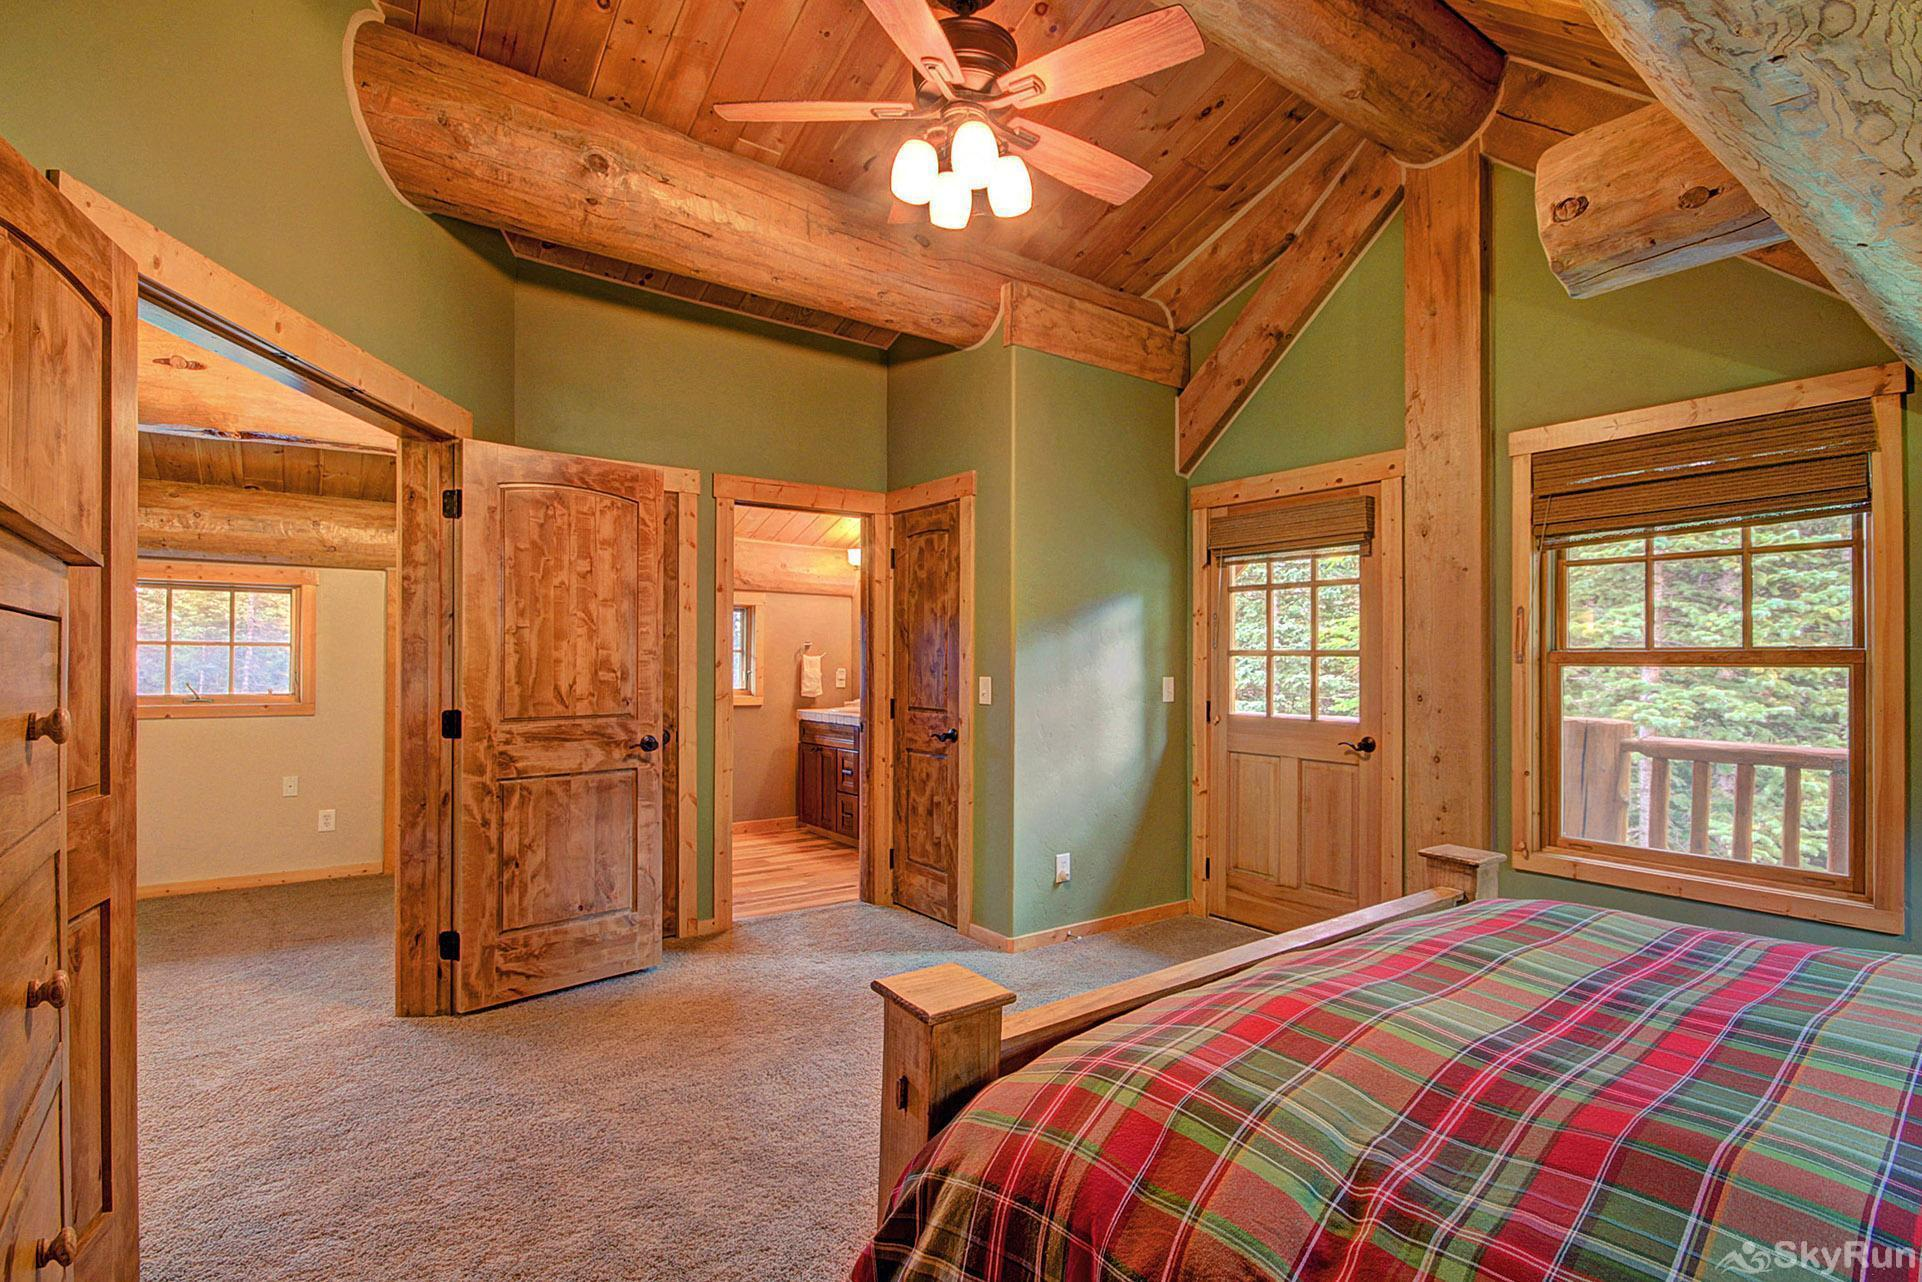 Timber Ridge Lodge Vaulted ceilings and natural light